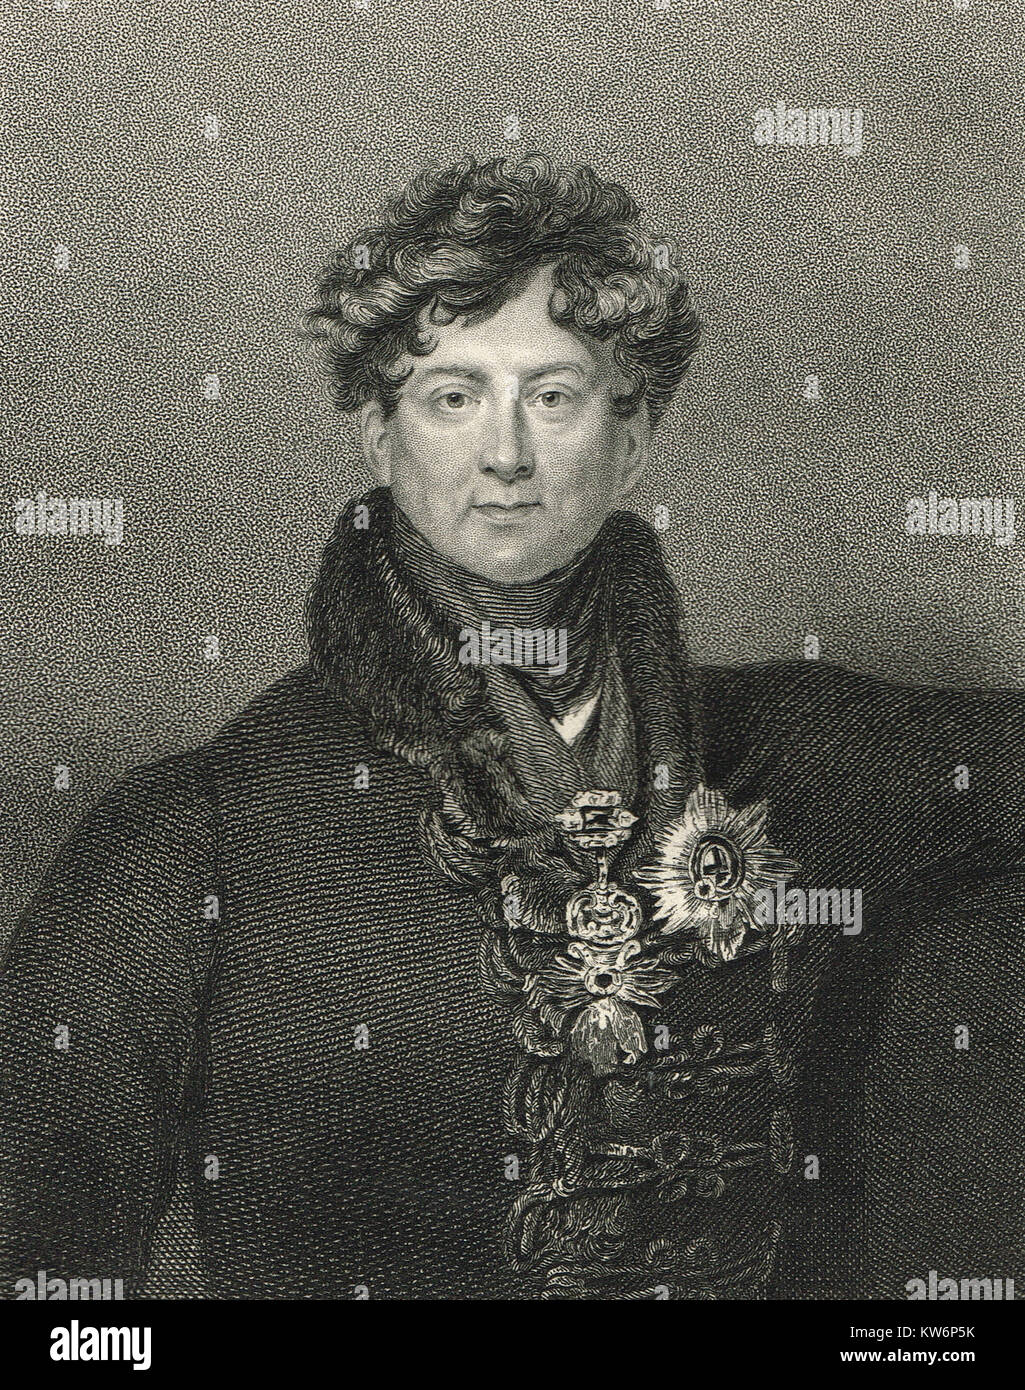 King George IV of the United Kingdom, 1762-1830, reigned 1820-1830 - Stock Image